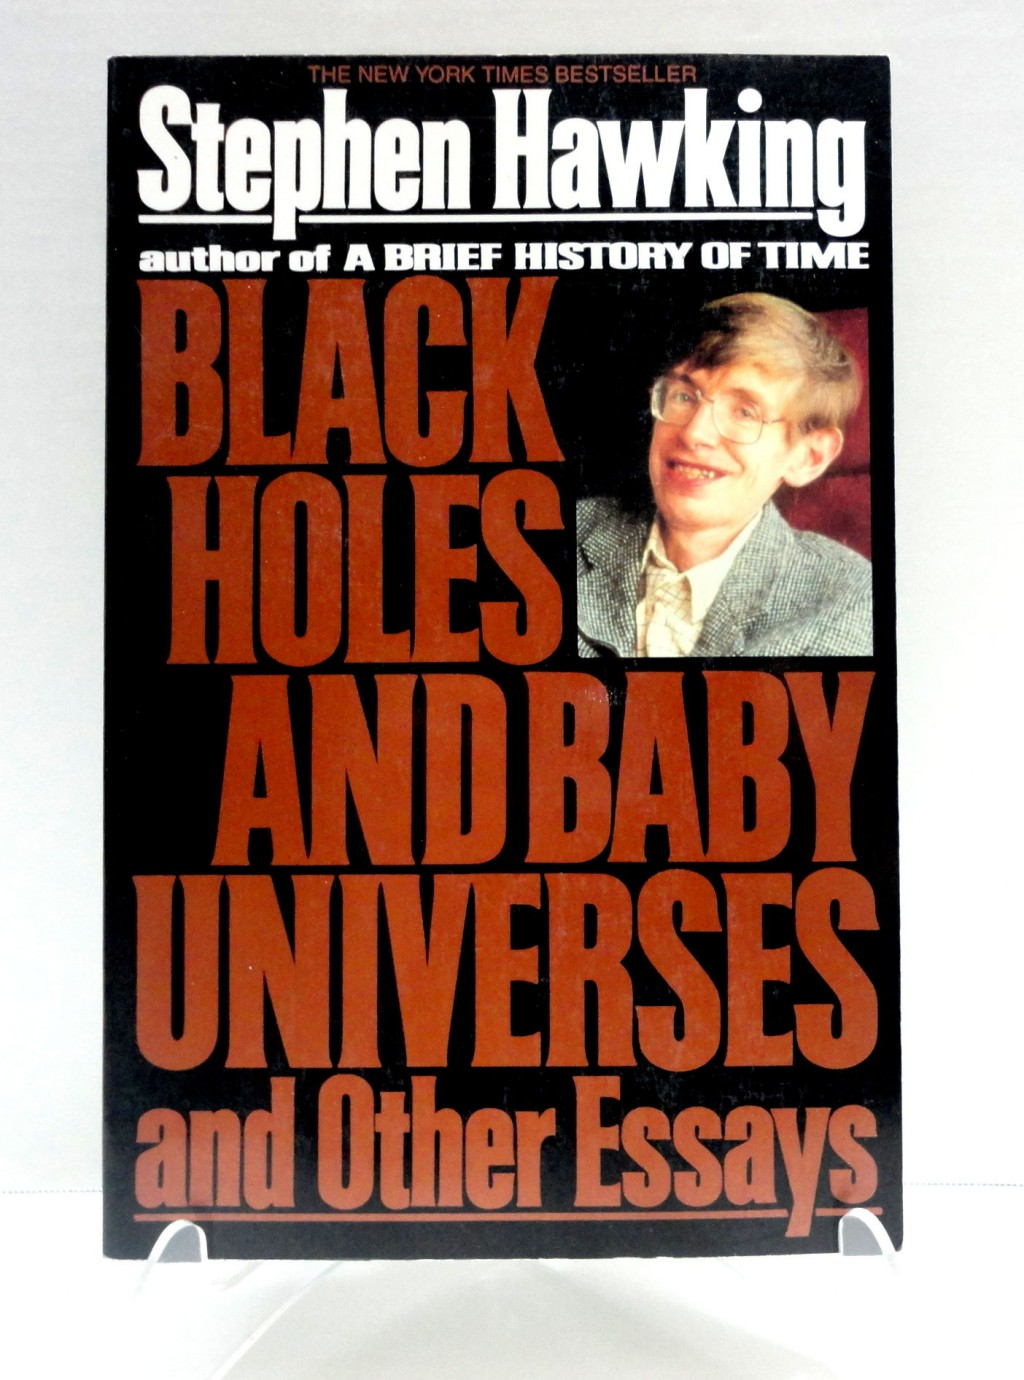 012 Essay Example X Black Holes And Baby Universes Other Unique Essays Review Ebook Free Download Amazon Large